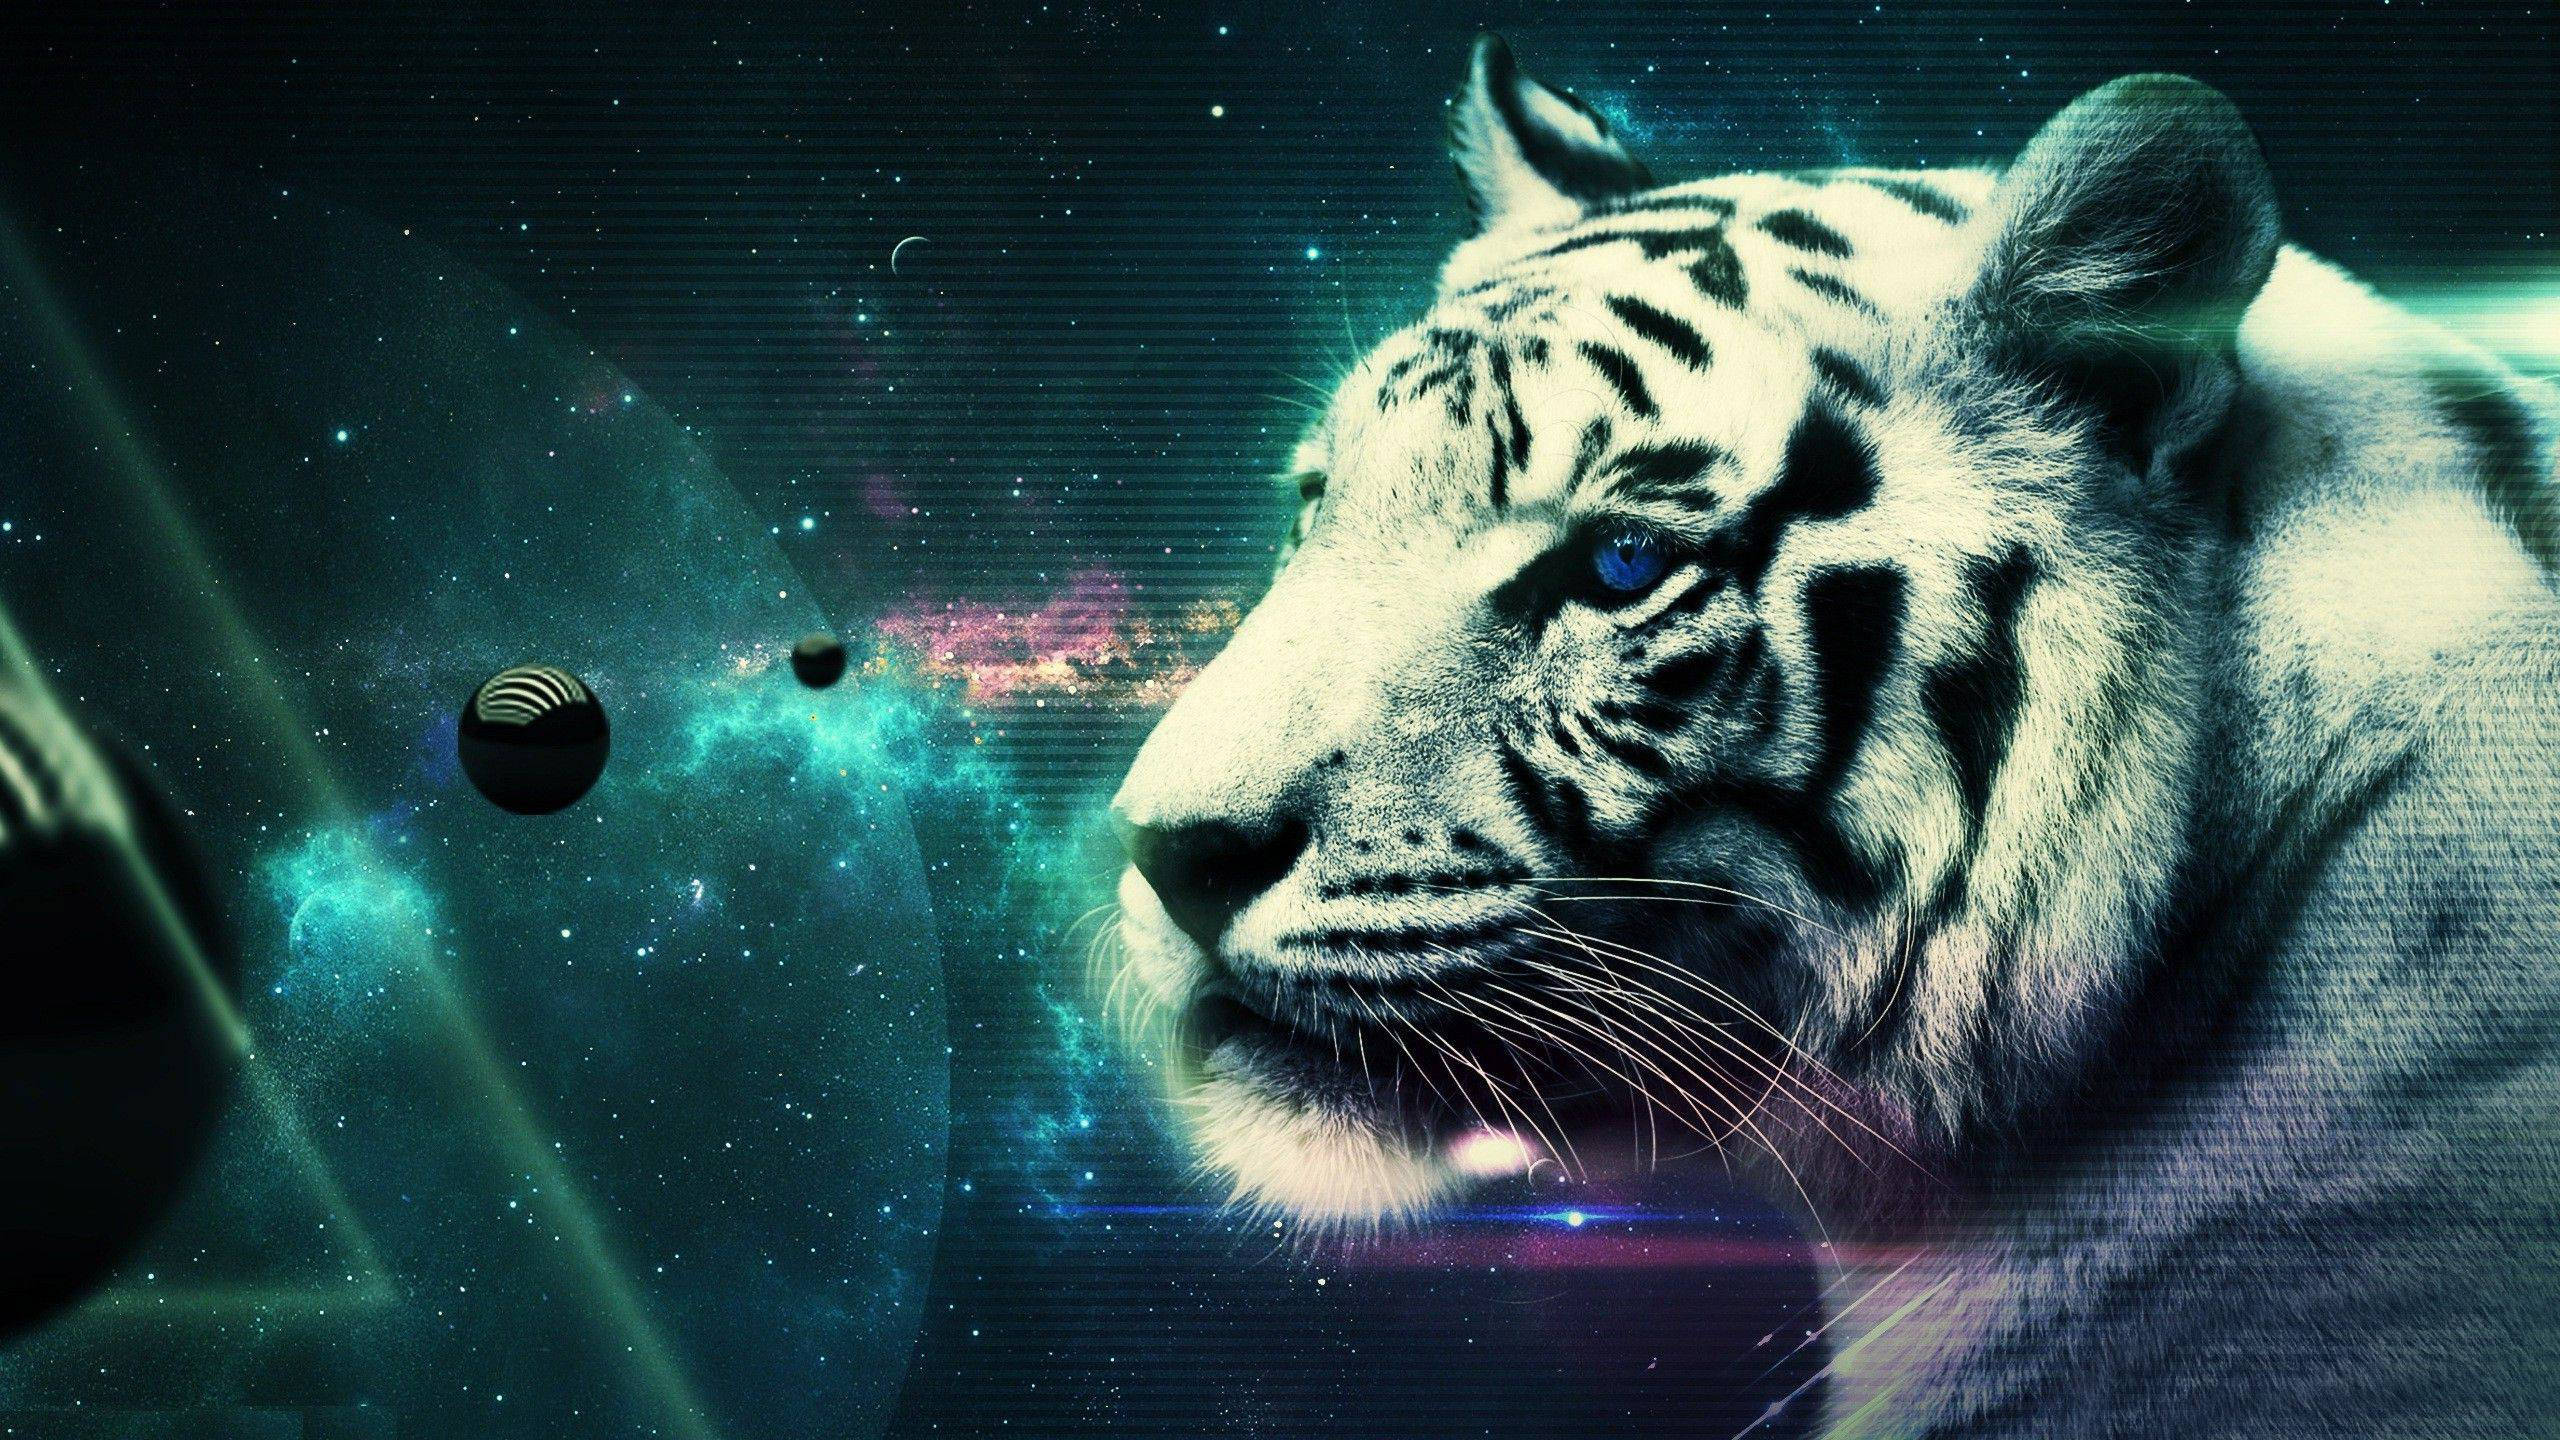 Cool Tiger Wallpapers Top Free Cool Tiger Backgrounds Wallpaperaccess